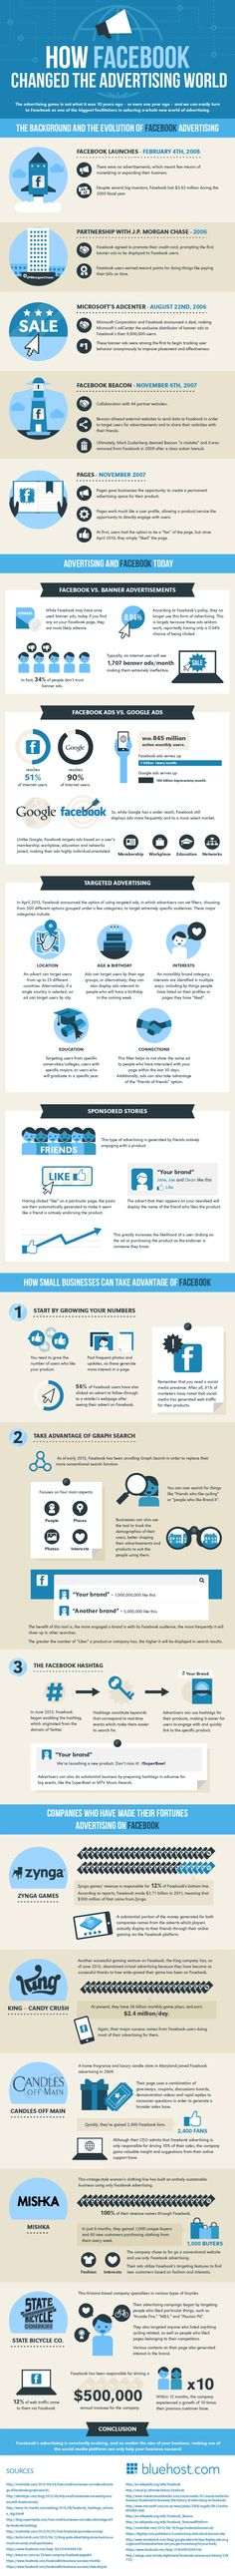 How Facebook Changed the Advertising World #Infographic #FacebookTips #FacebookMarketing